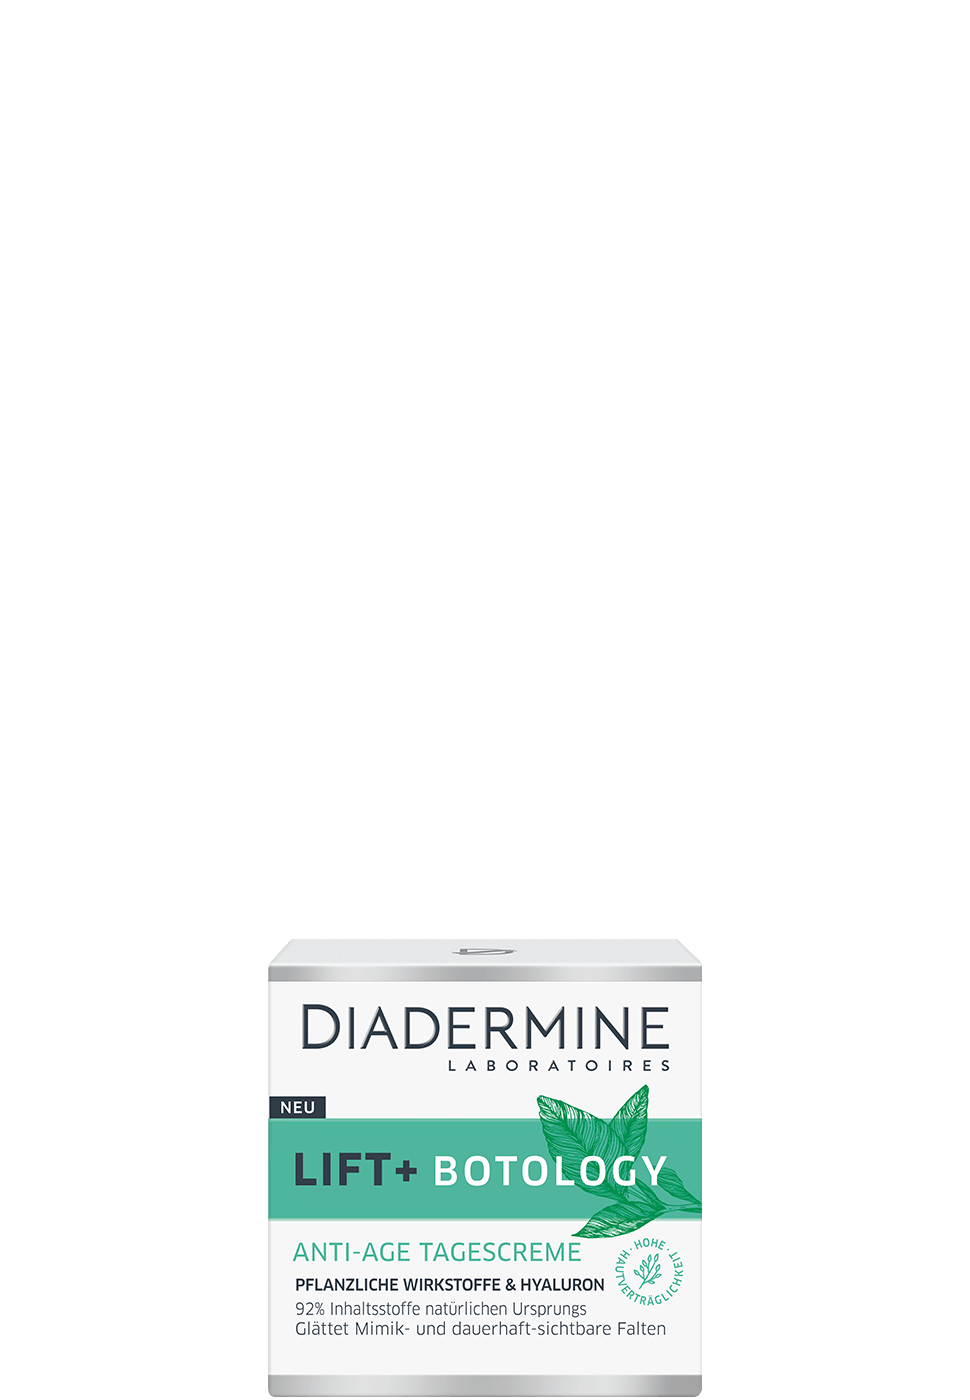 diaatrmine_at_lift_plus_botology_tagescreme_970x1400